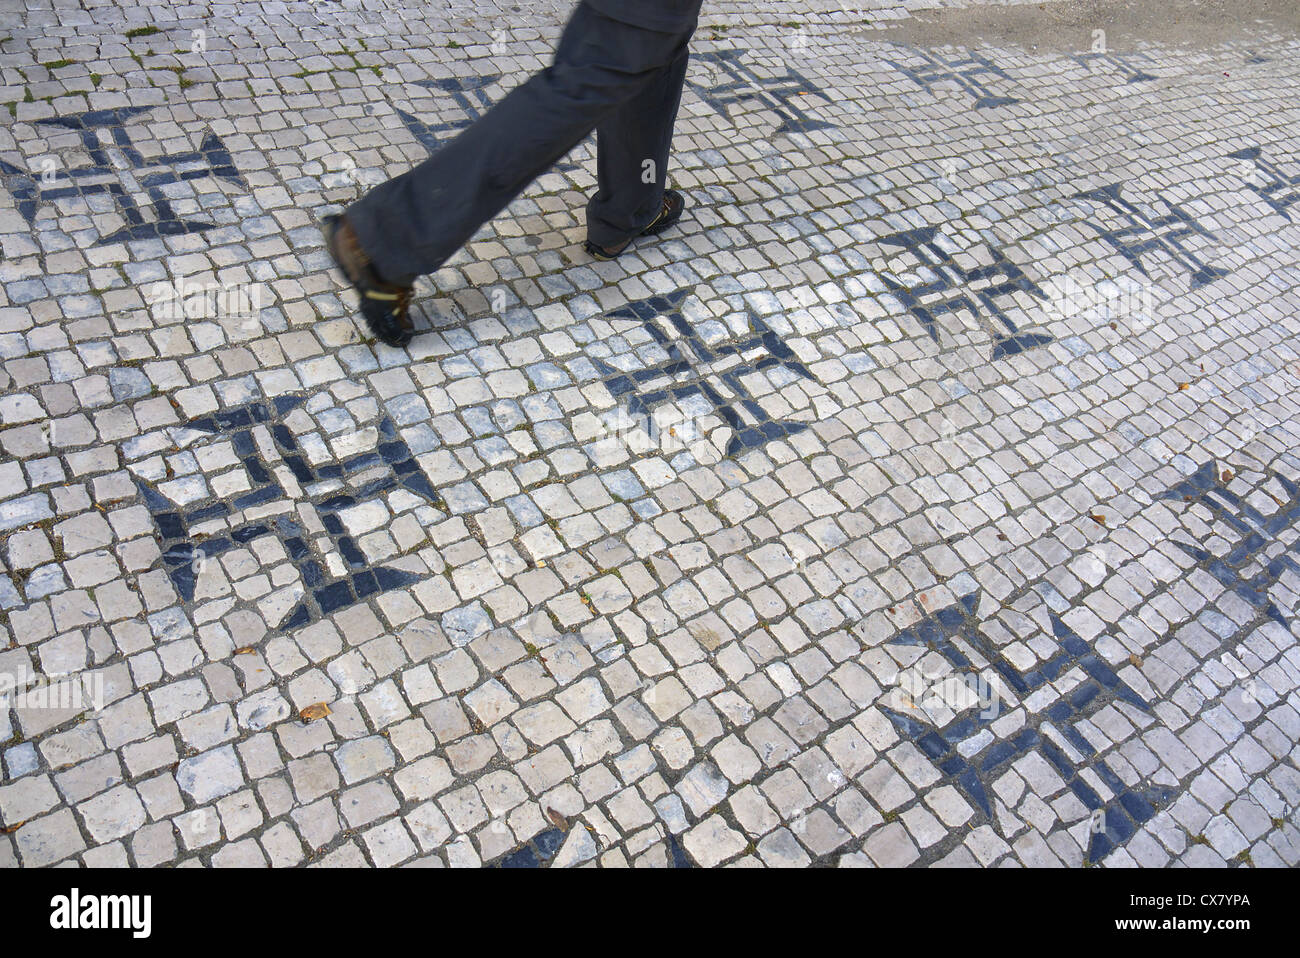 The cross of the Knights Templar in the pavement in Tomar, Portugal. - Stock Image